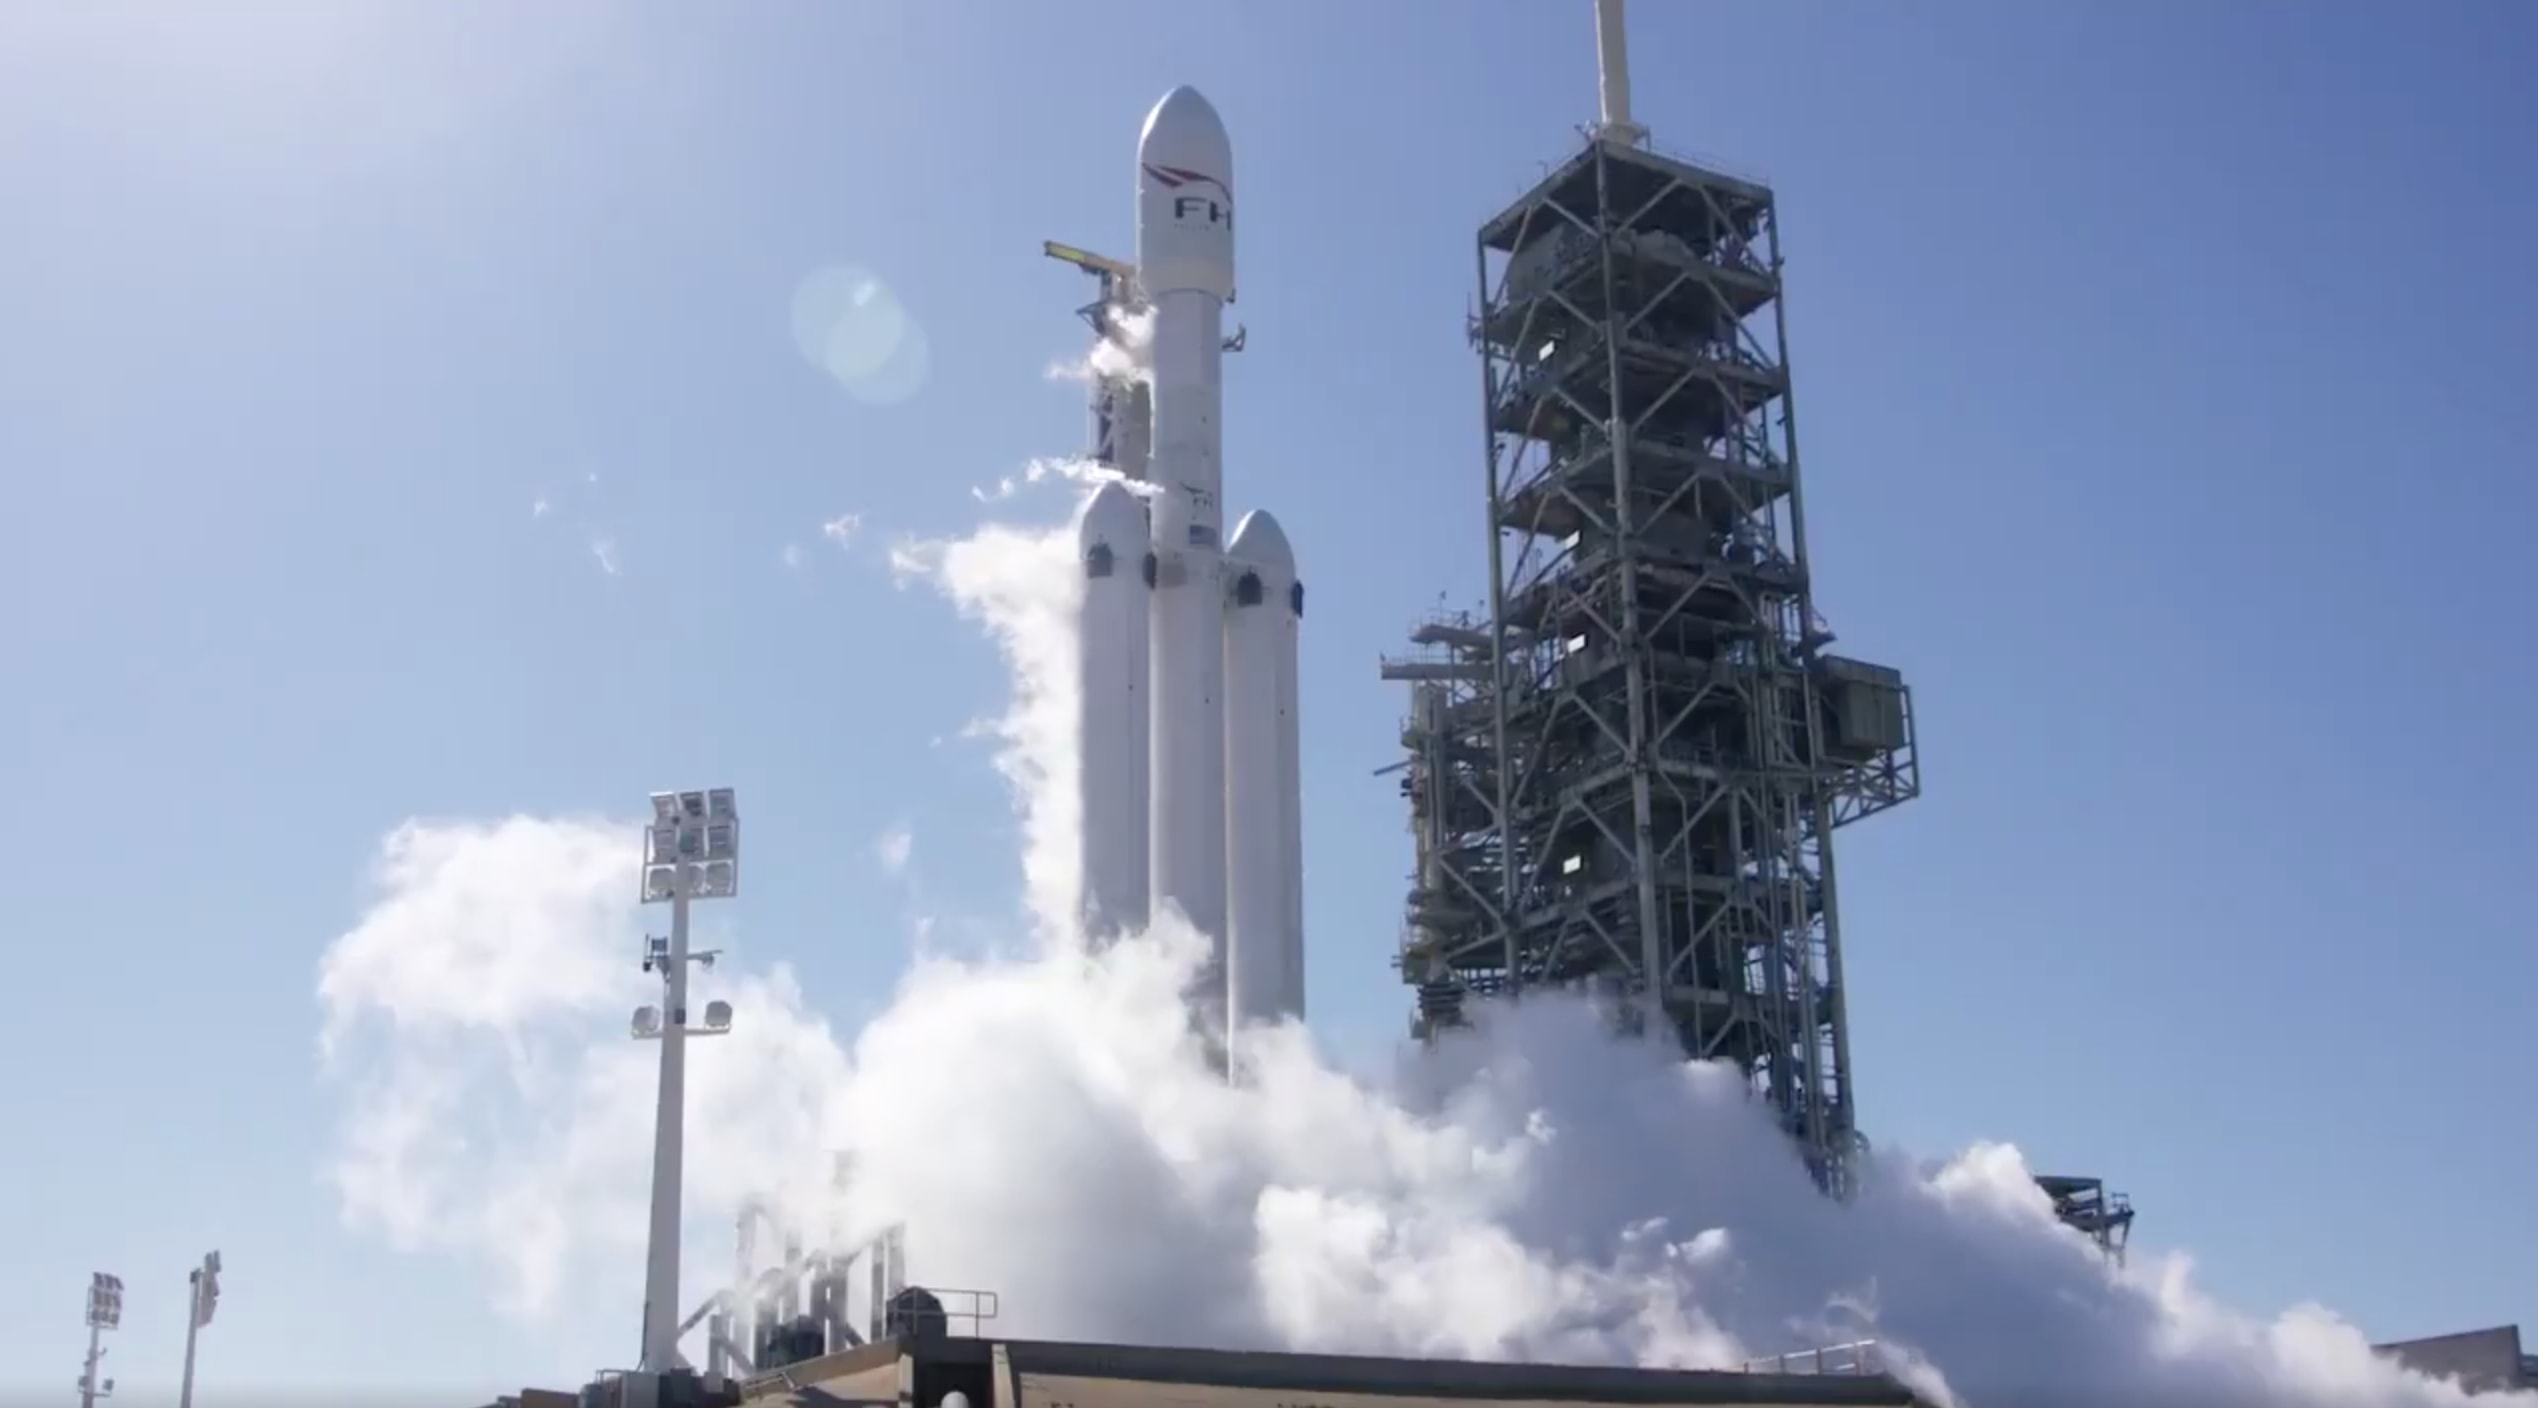 SpaceX and NASA discuss concerns over increasing fuel onboard